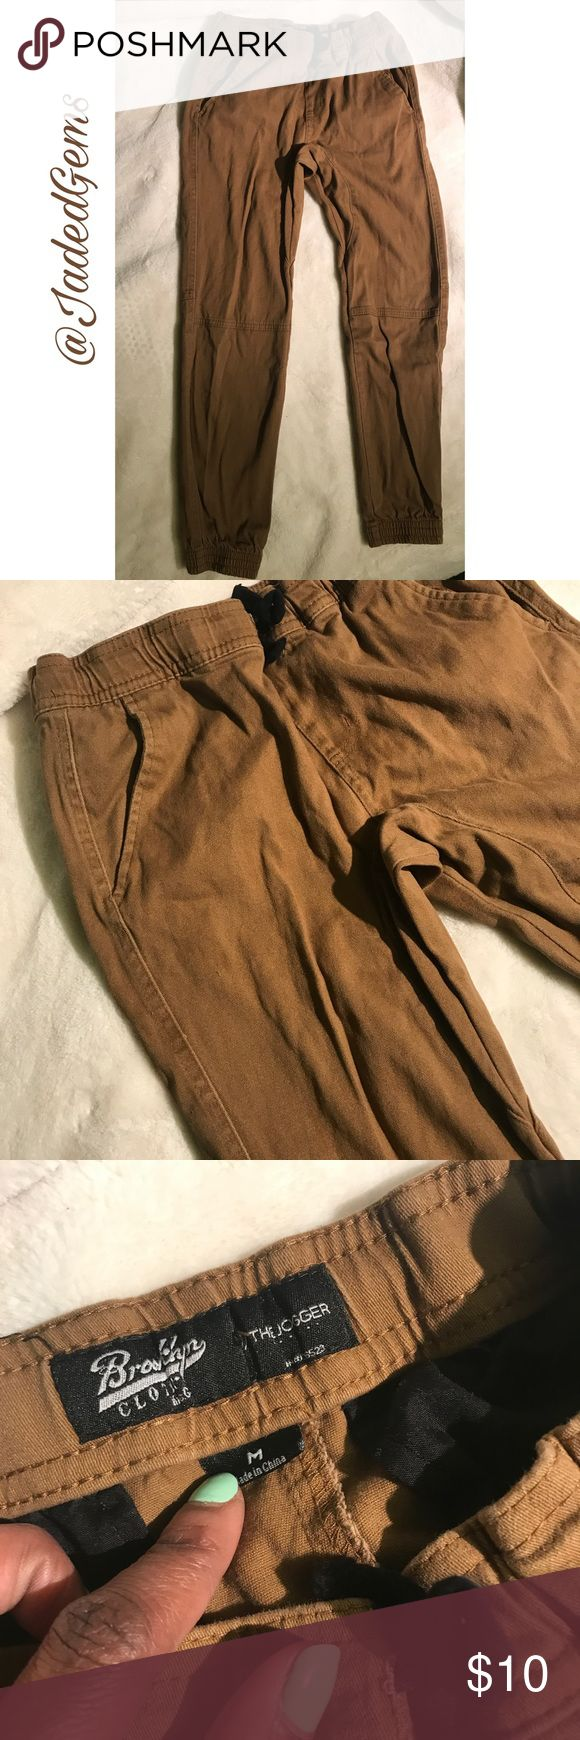 Boys Khaki Jogger pants Brooklyn Clothing brand Khaki joggers for boys - size M - 8/10 Bottoms Sweatpants & Joggers